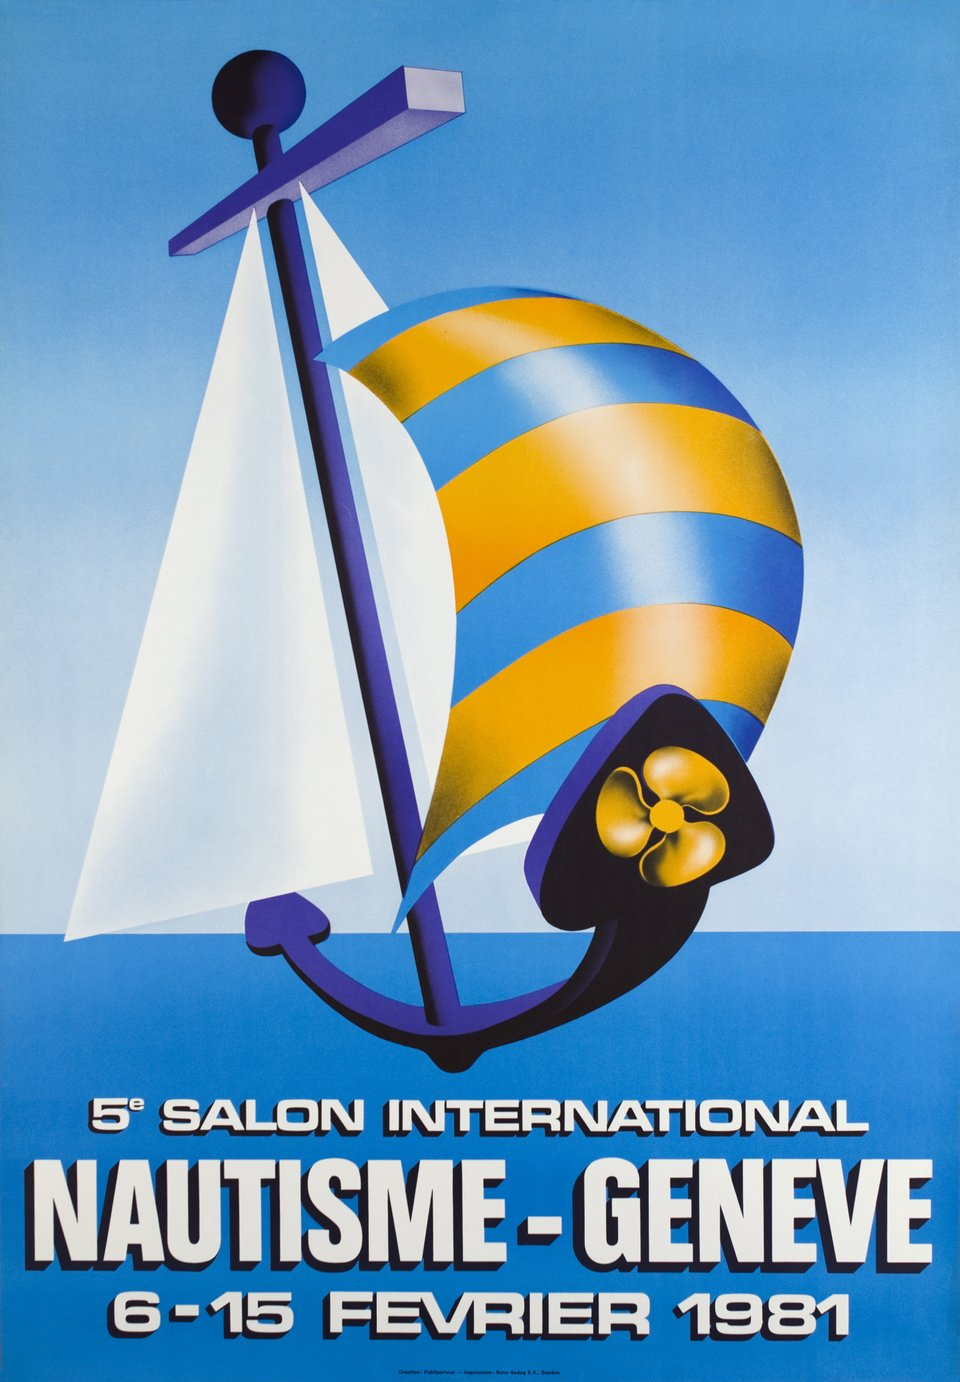 5e Salon International Nautisme, Genève – Vintage poster –  PUBLIPARTNER – 1981